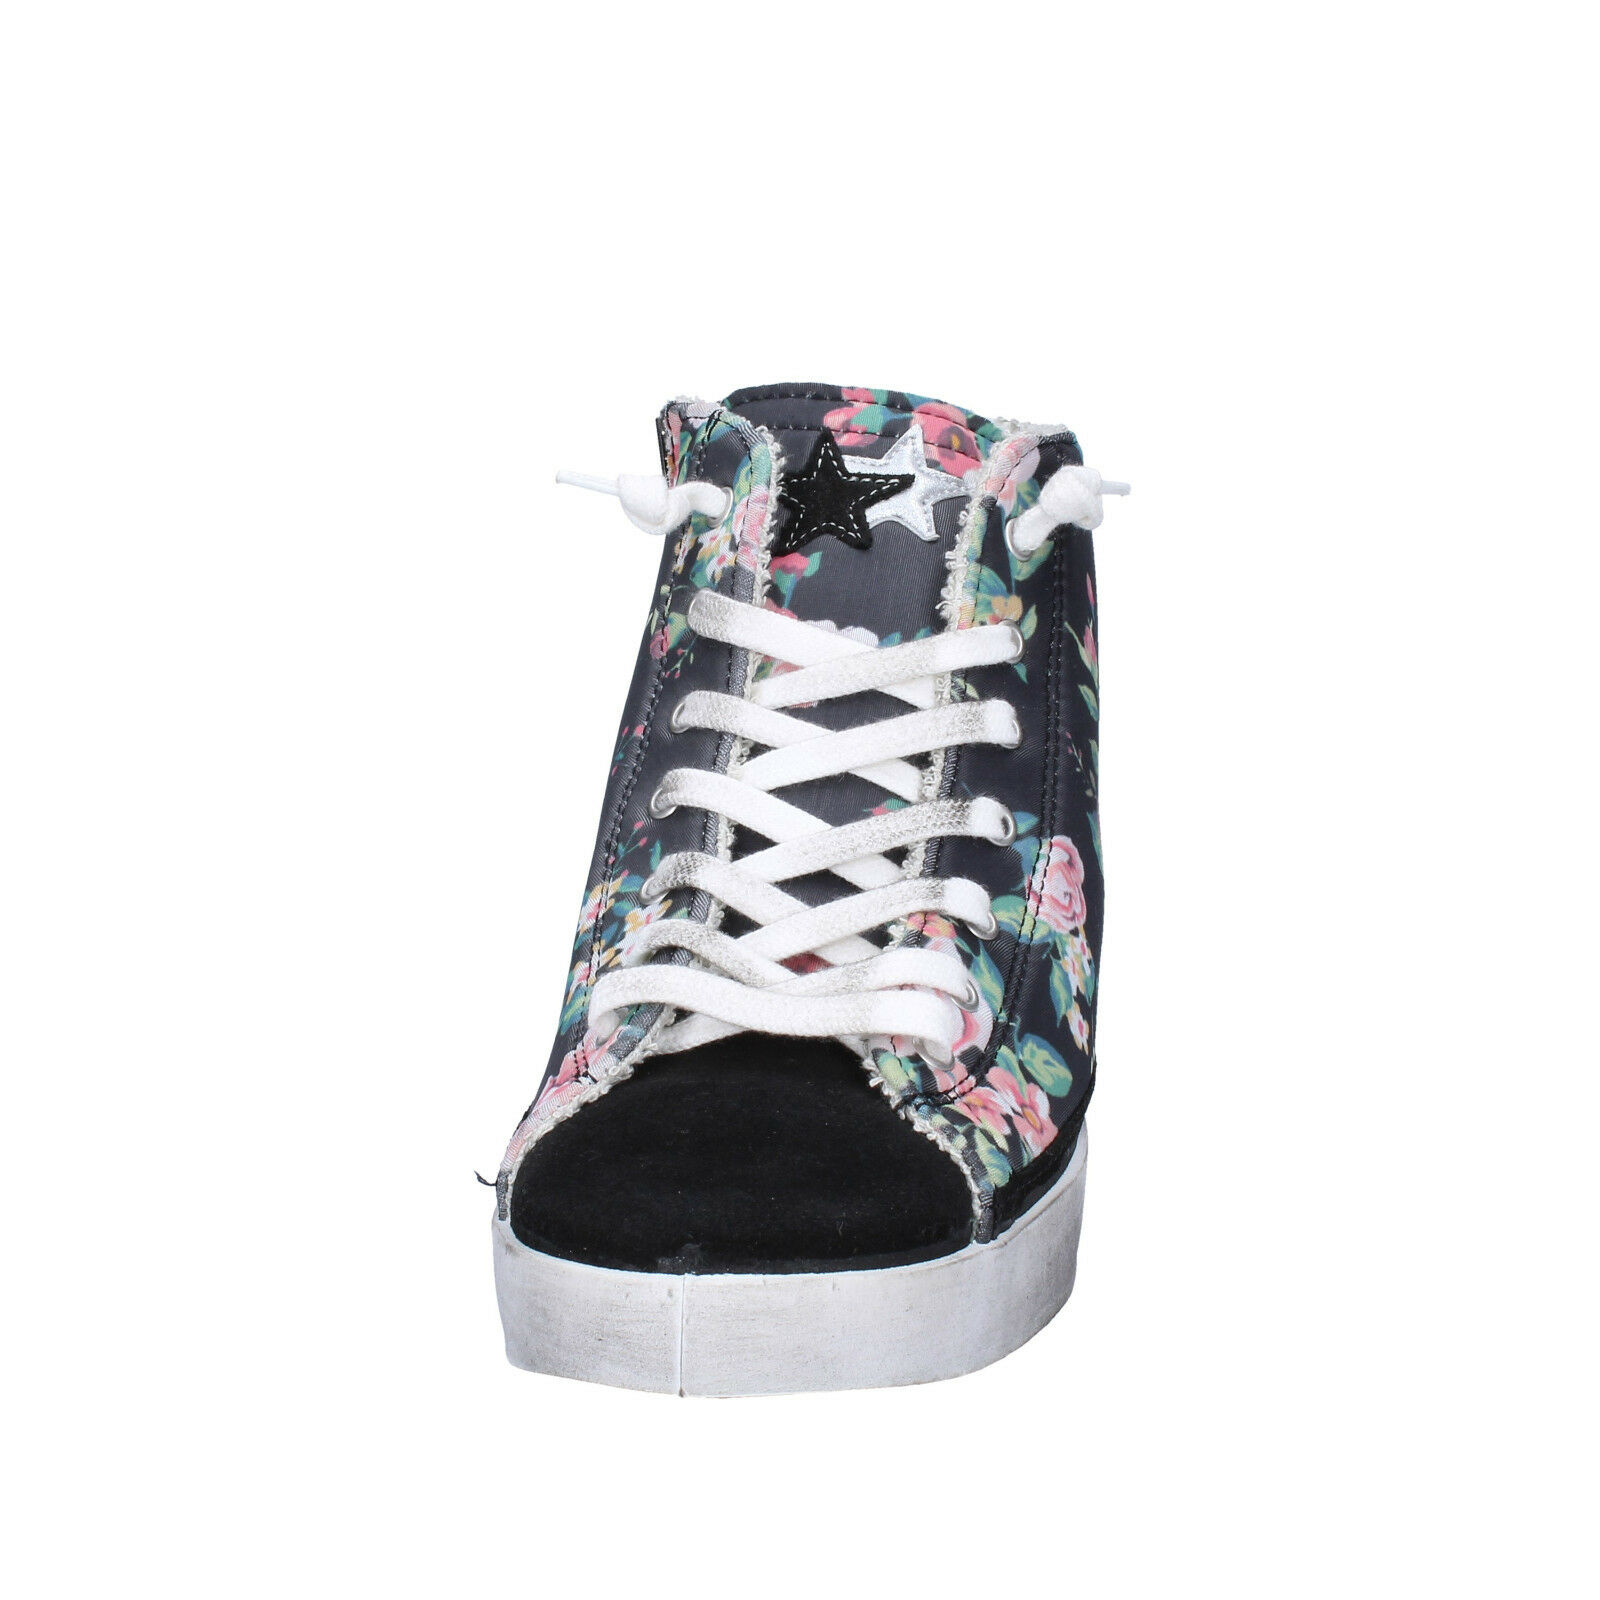 B.O.C mujeres Luana Low Top Fashion Lace Up Fashion Top Zapatillas 0afe5b